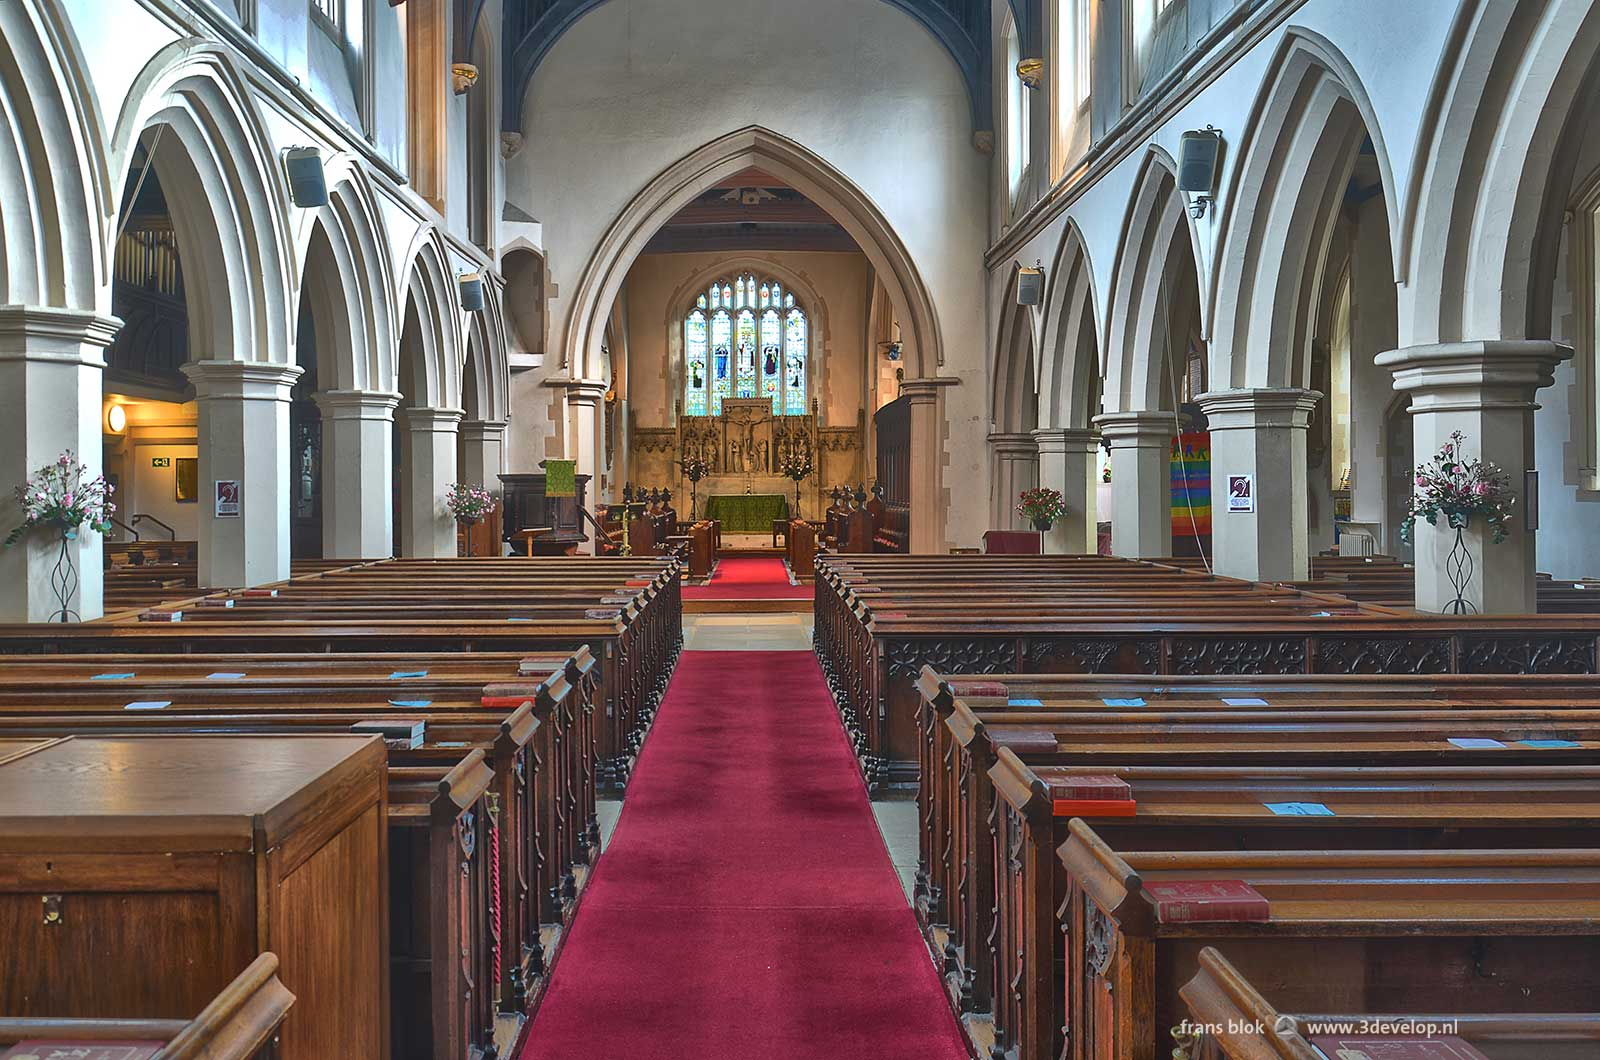 Watford St.Mary's church - interior seen from church entrance